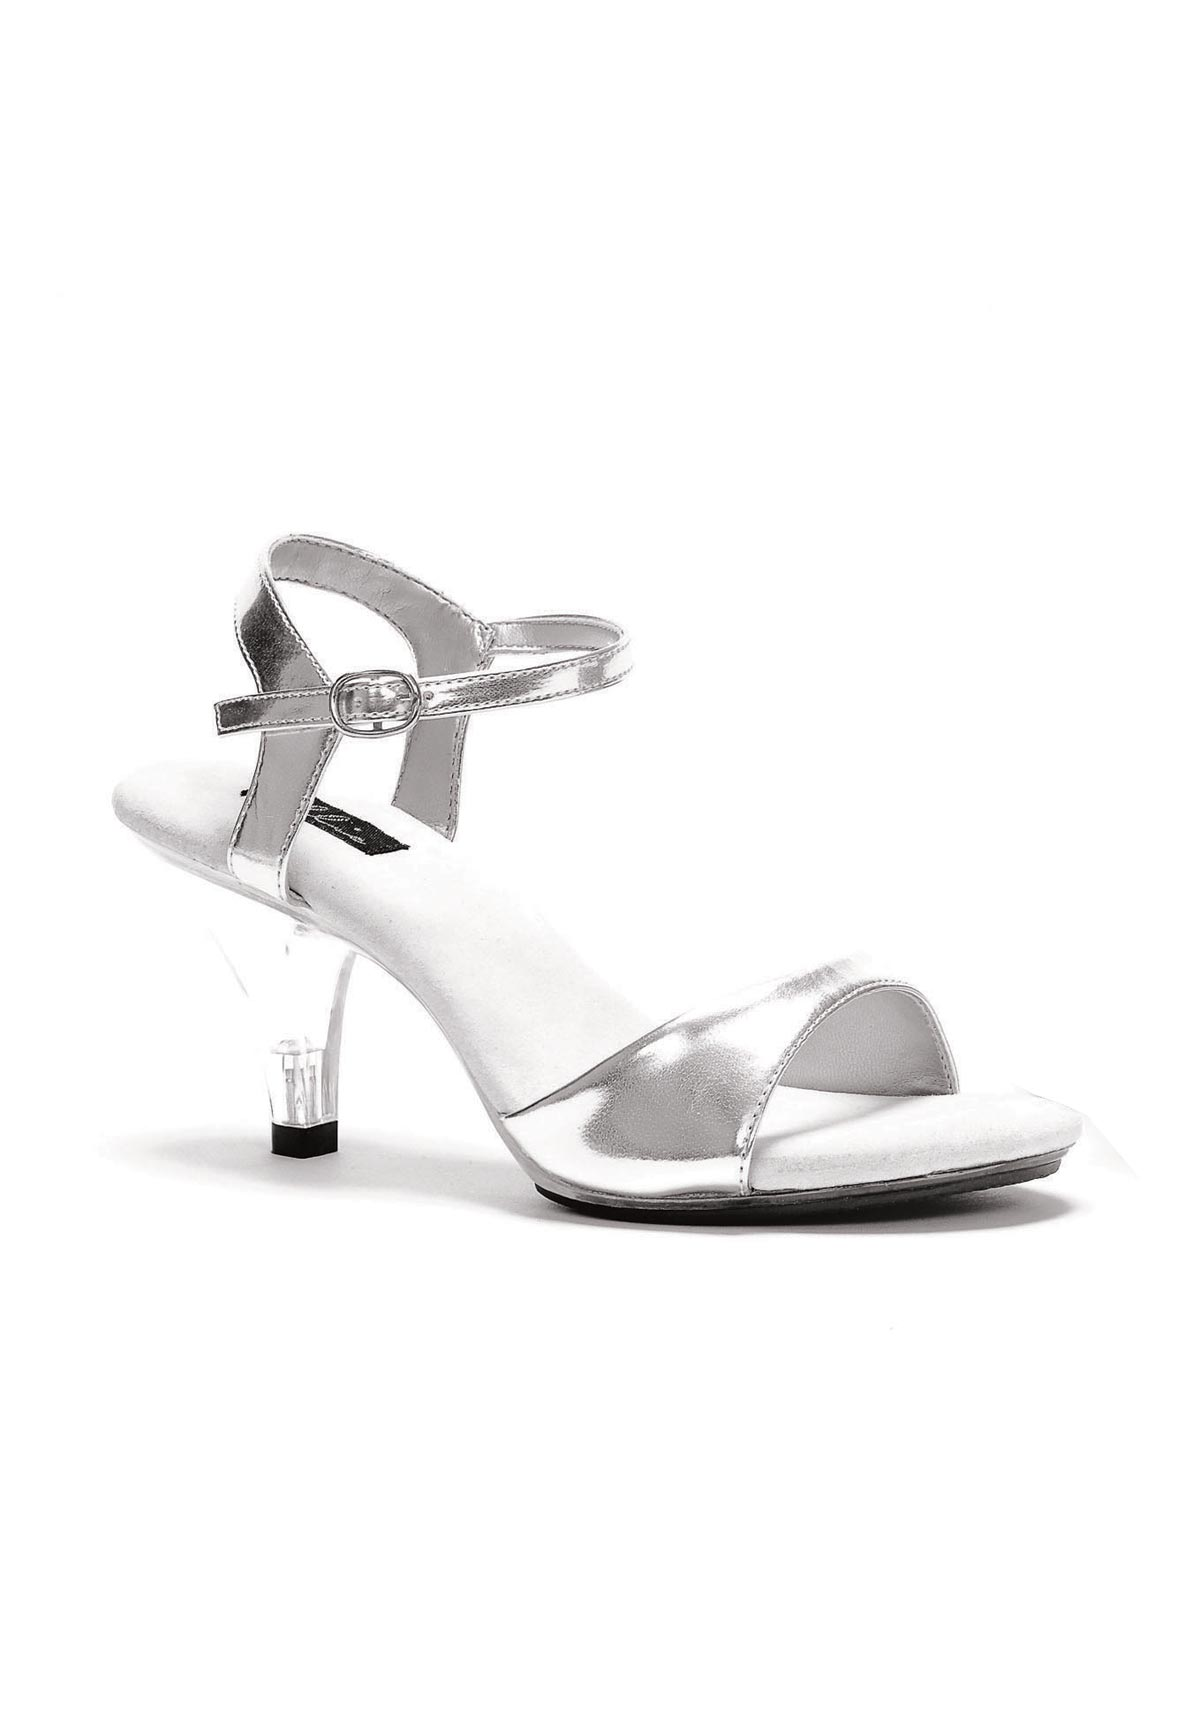 Ellie Shoes 305-JULIET 3 Inch Heel Sandal Women's Size Shoe With ...